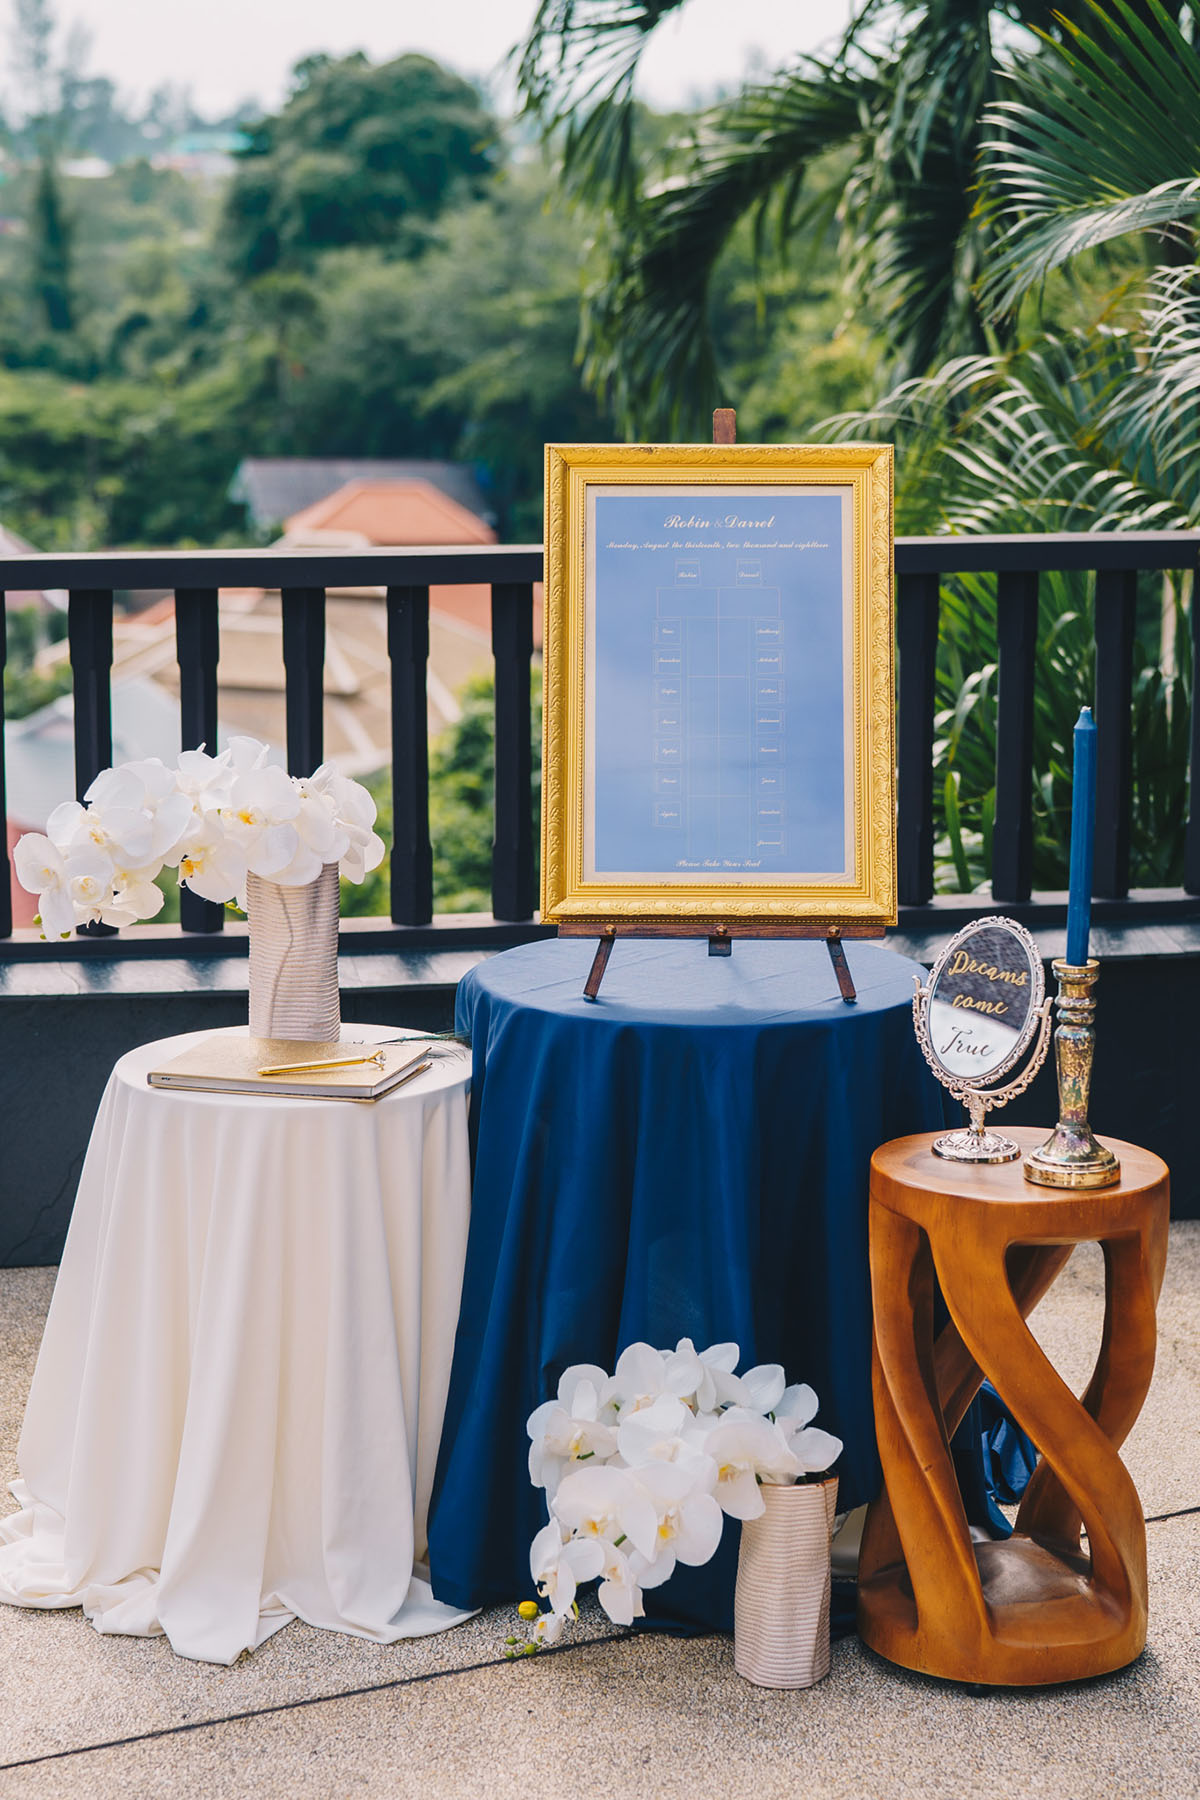 Seating chart in gold frame